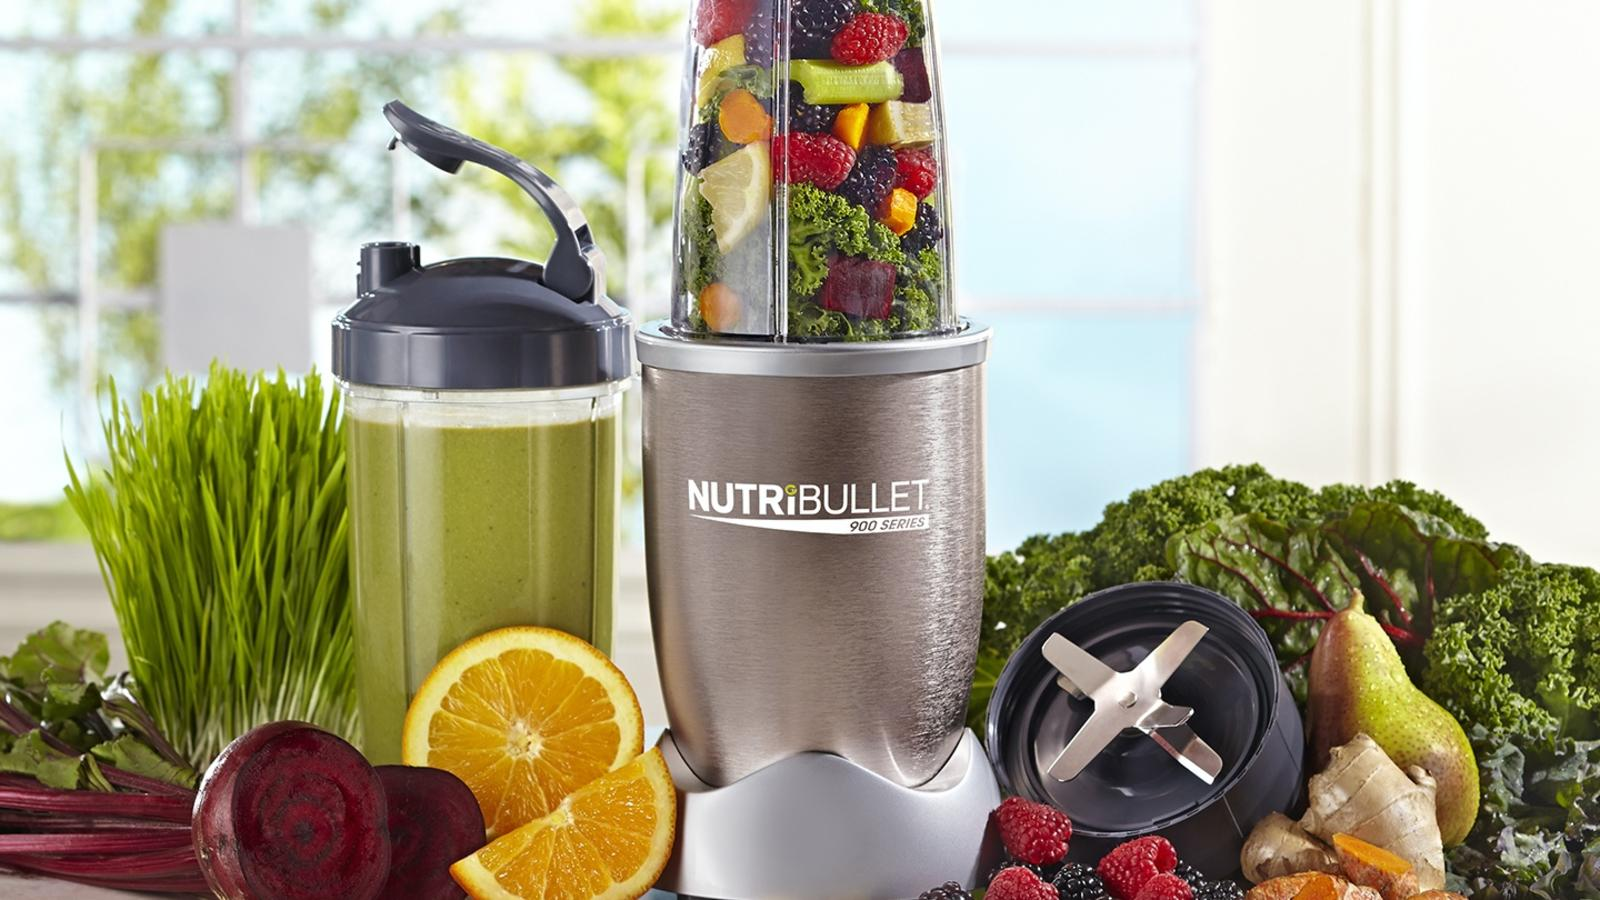 Nutribullet 600 Testimonial and The Initial Compact Mixer